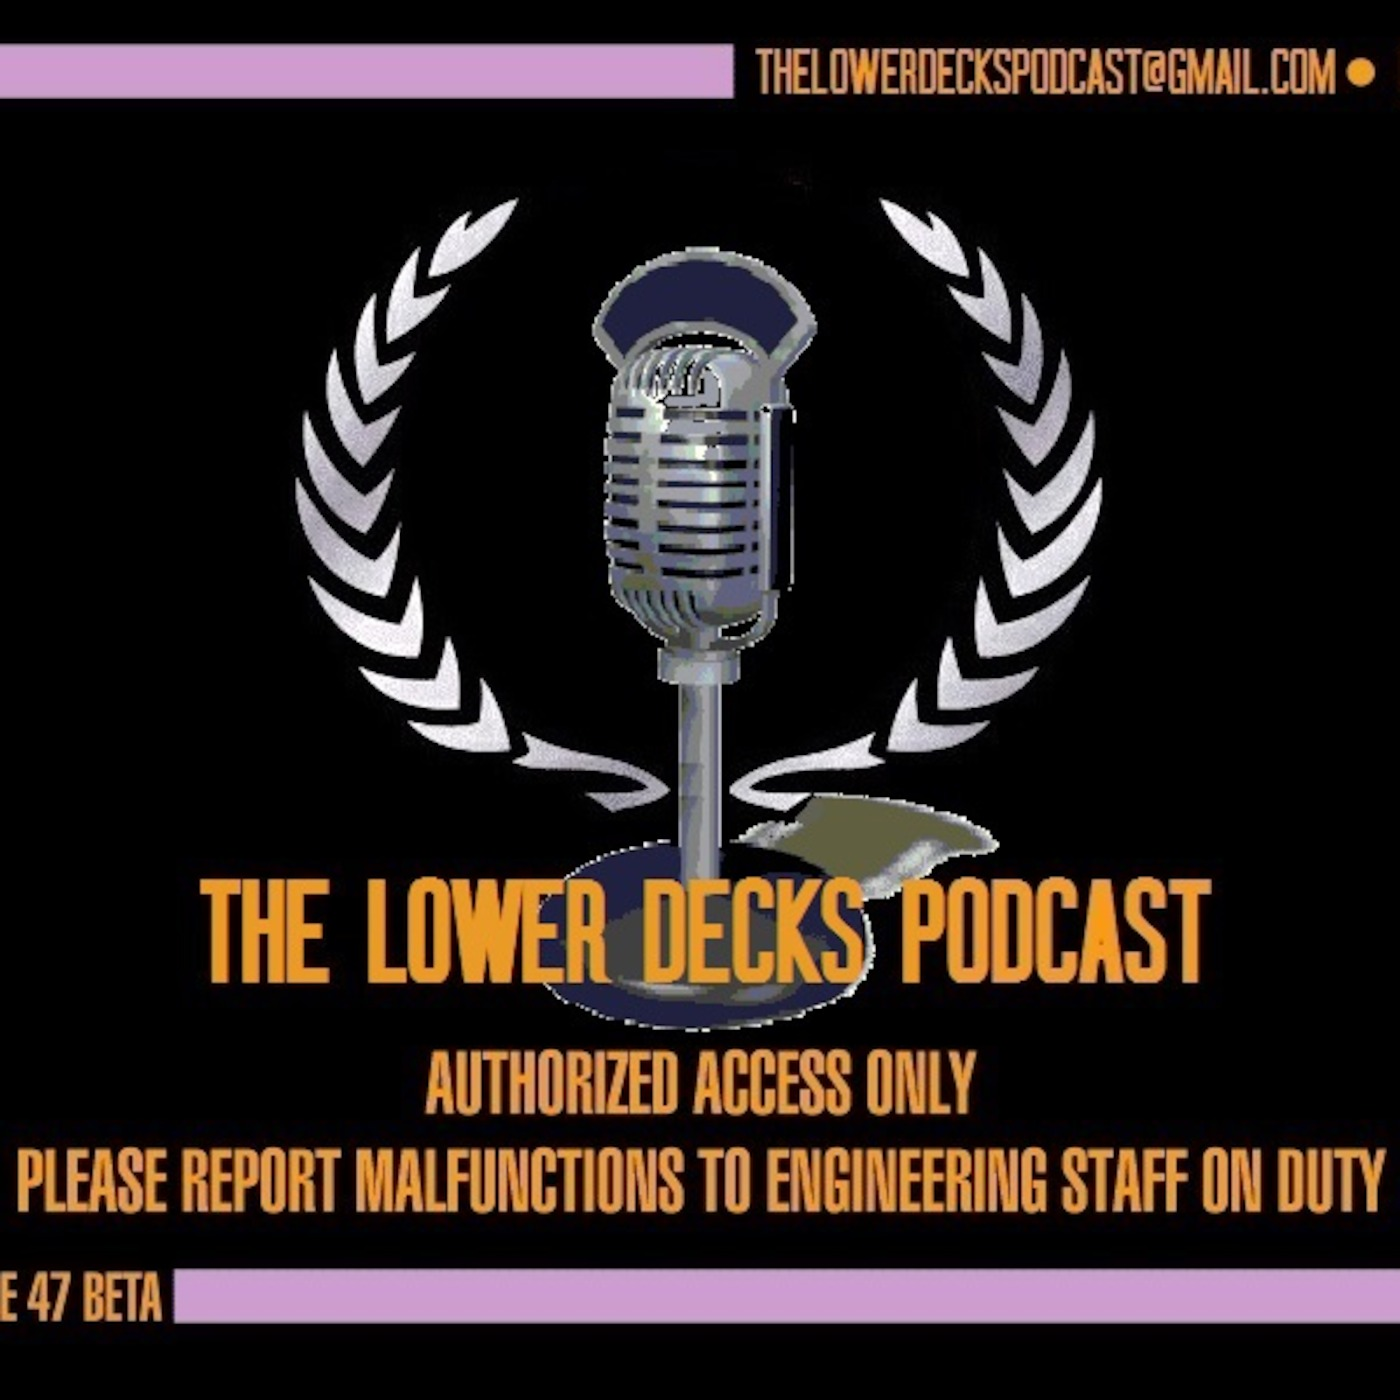 Thelowerdeck Podcast